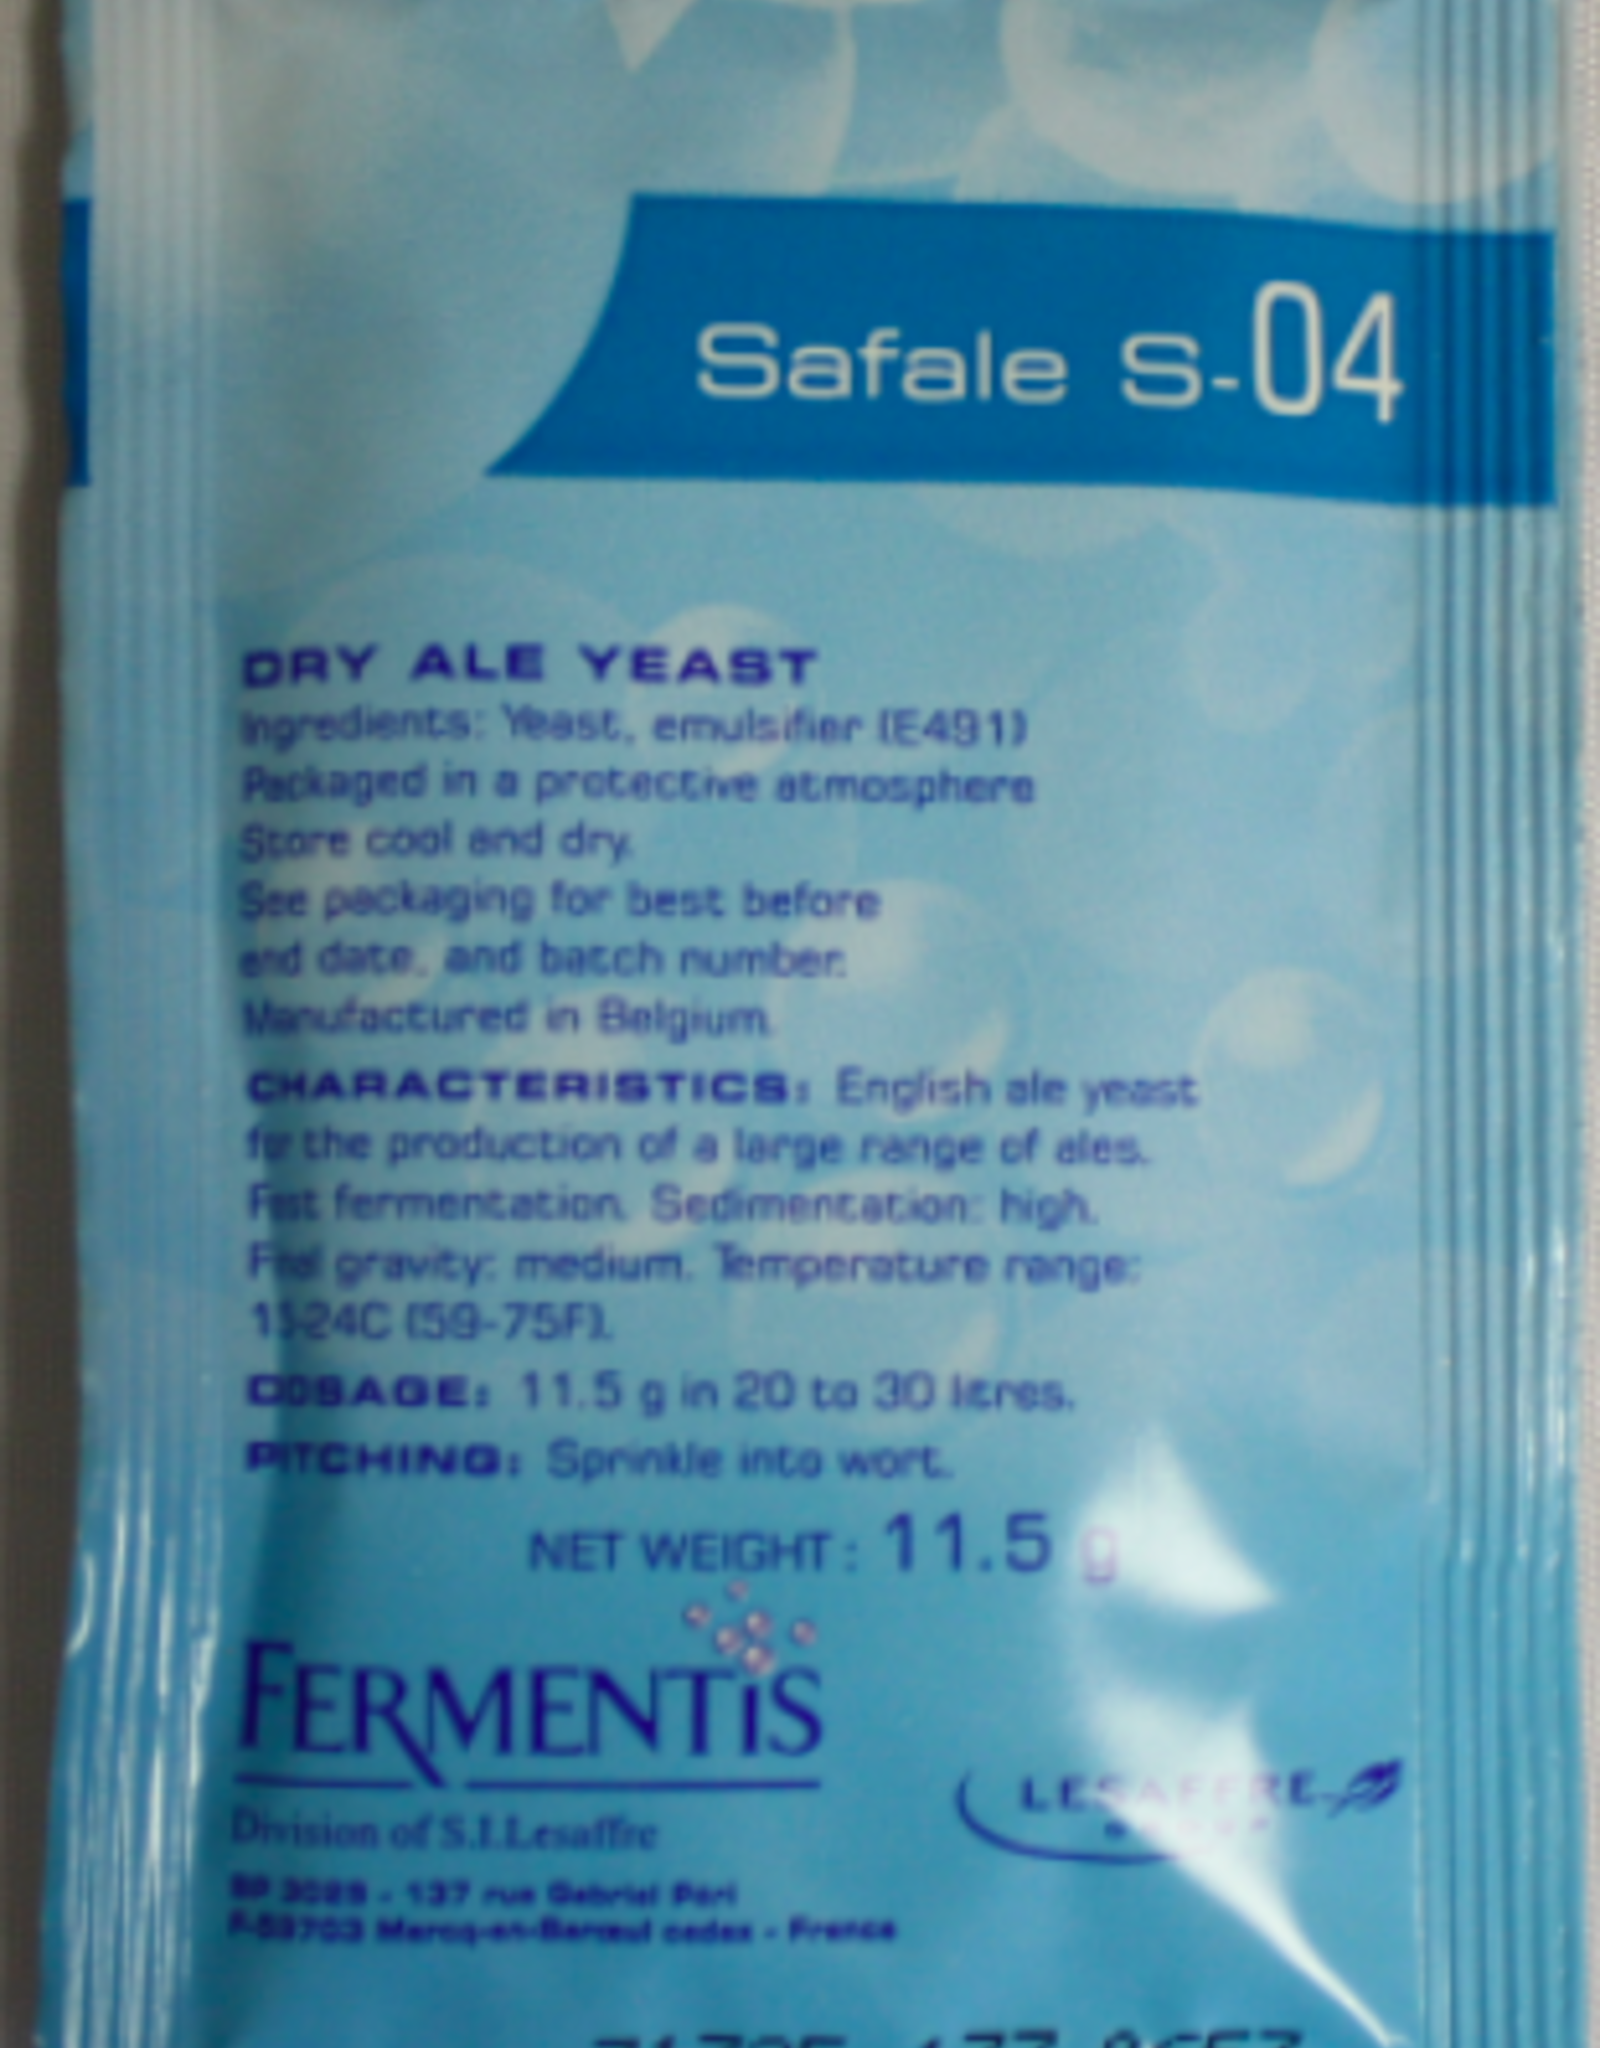 S-04 DRY ALE YEAST